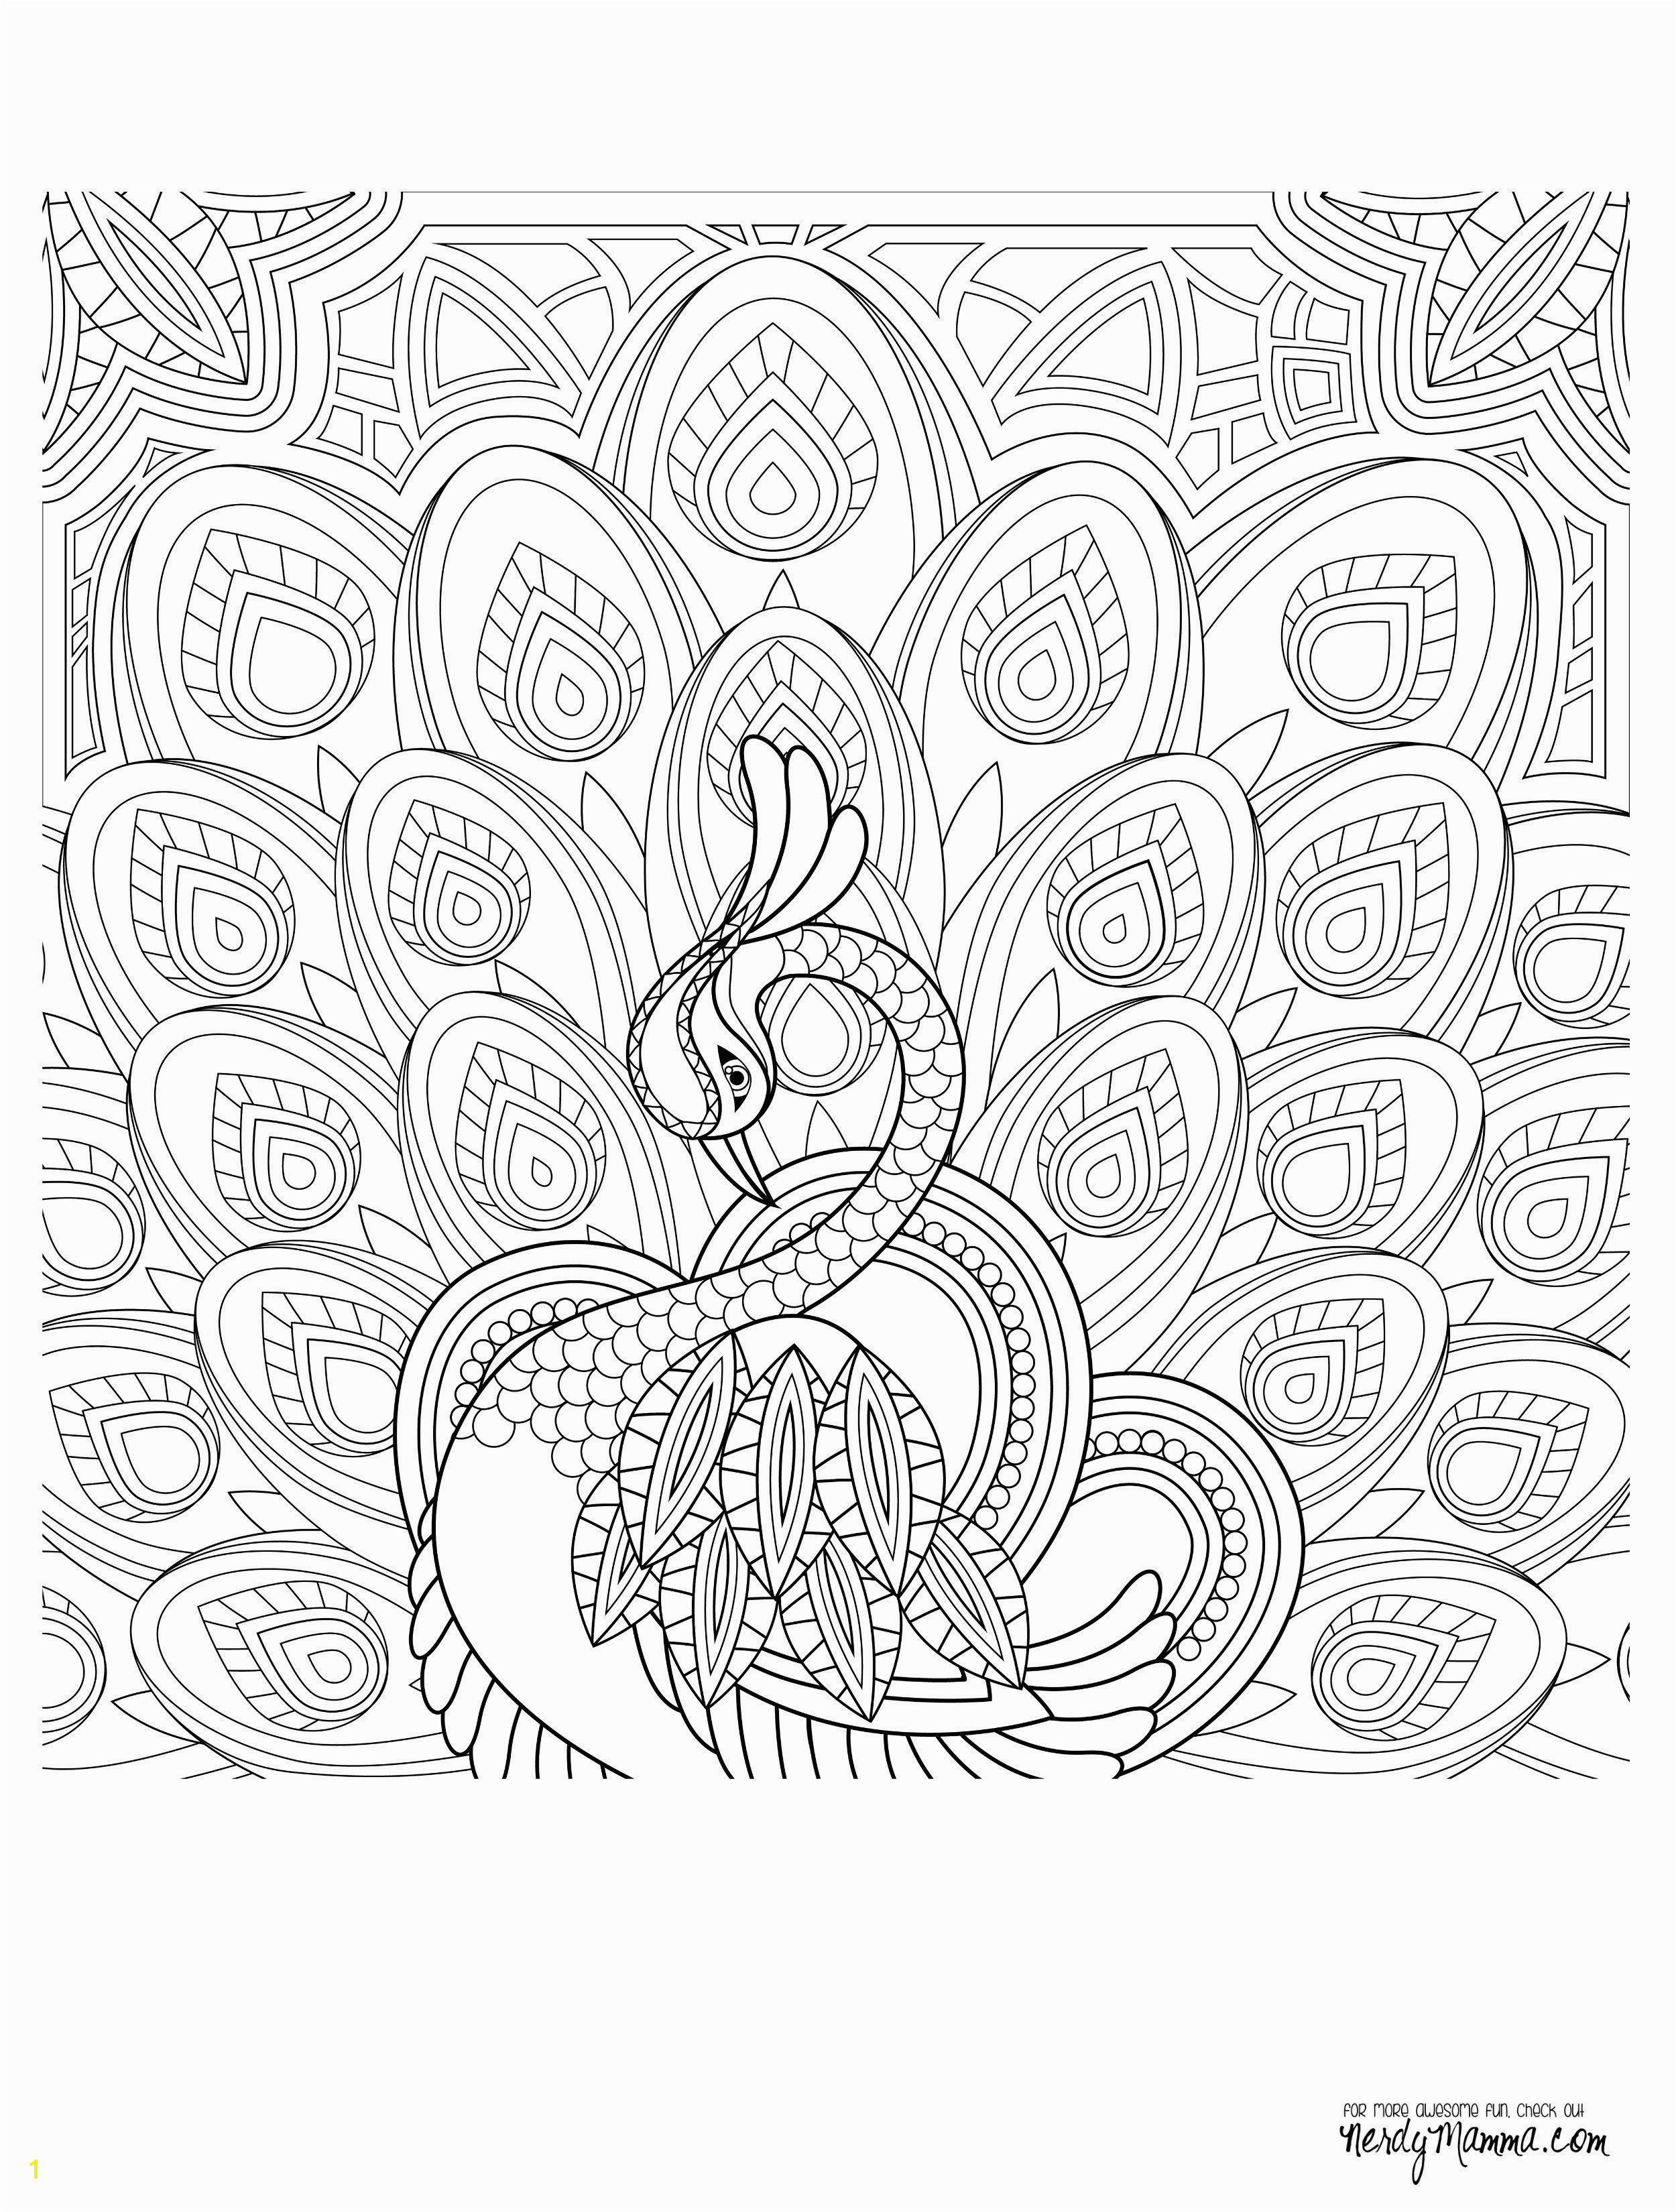 Wunderbar Mal Coloring Pages Fresh Crayola Pages 0d Voterapp